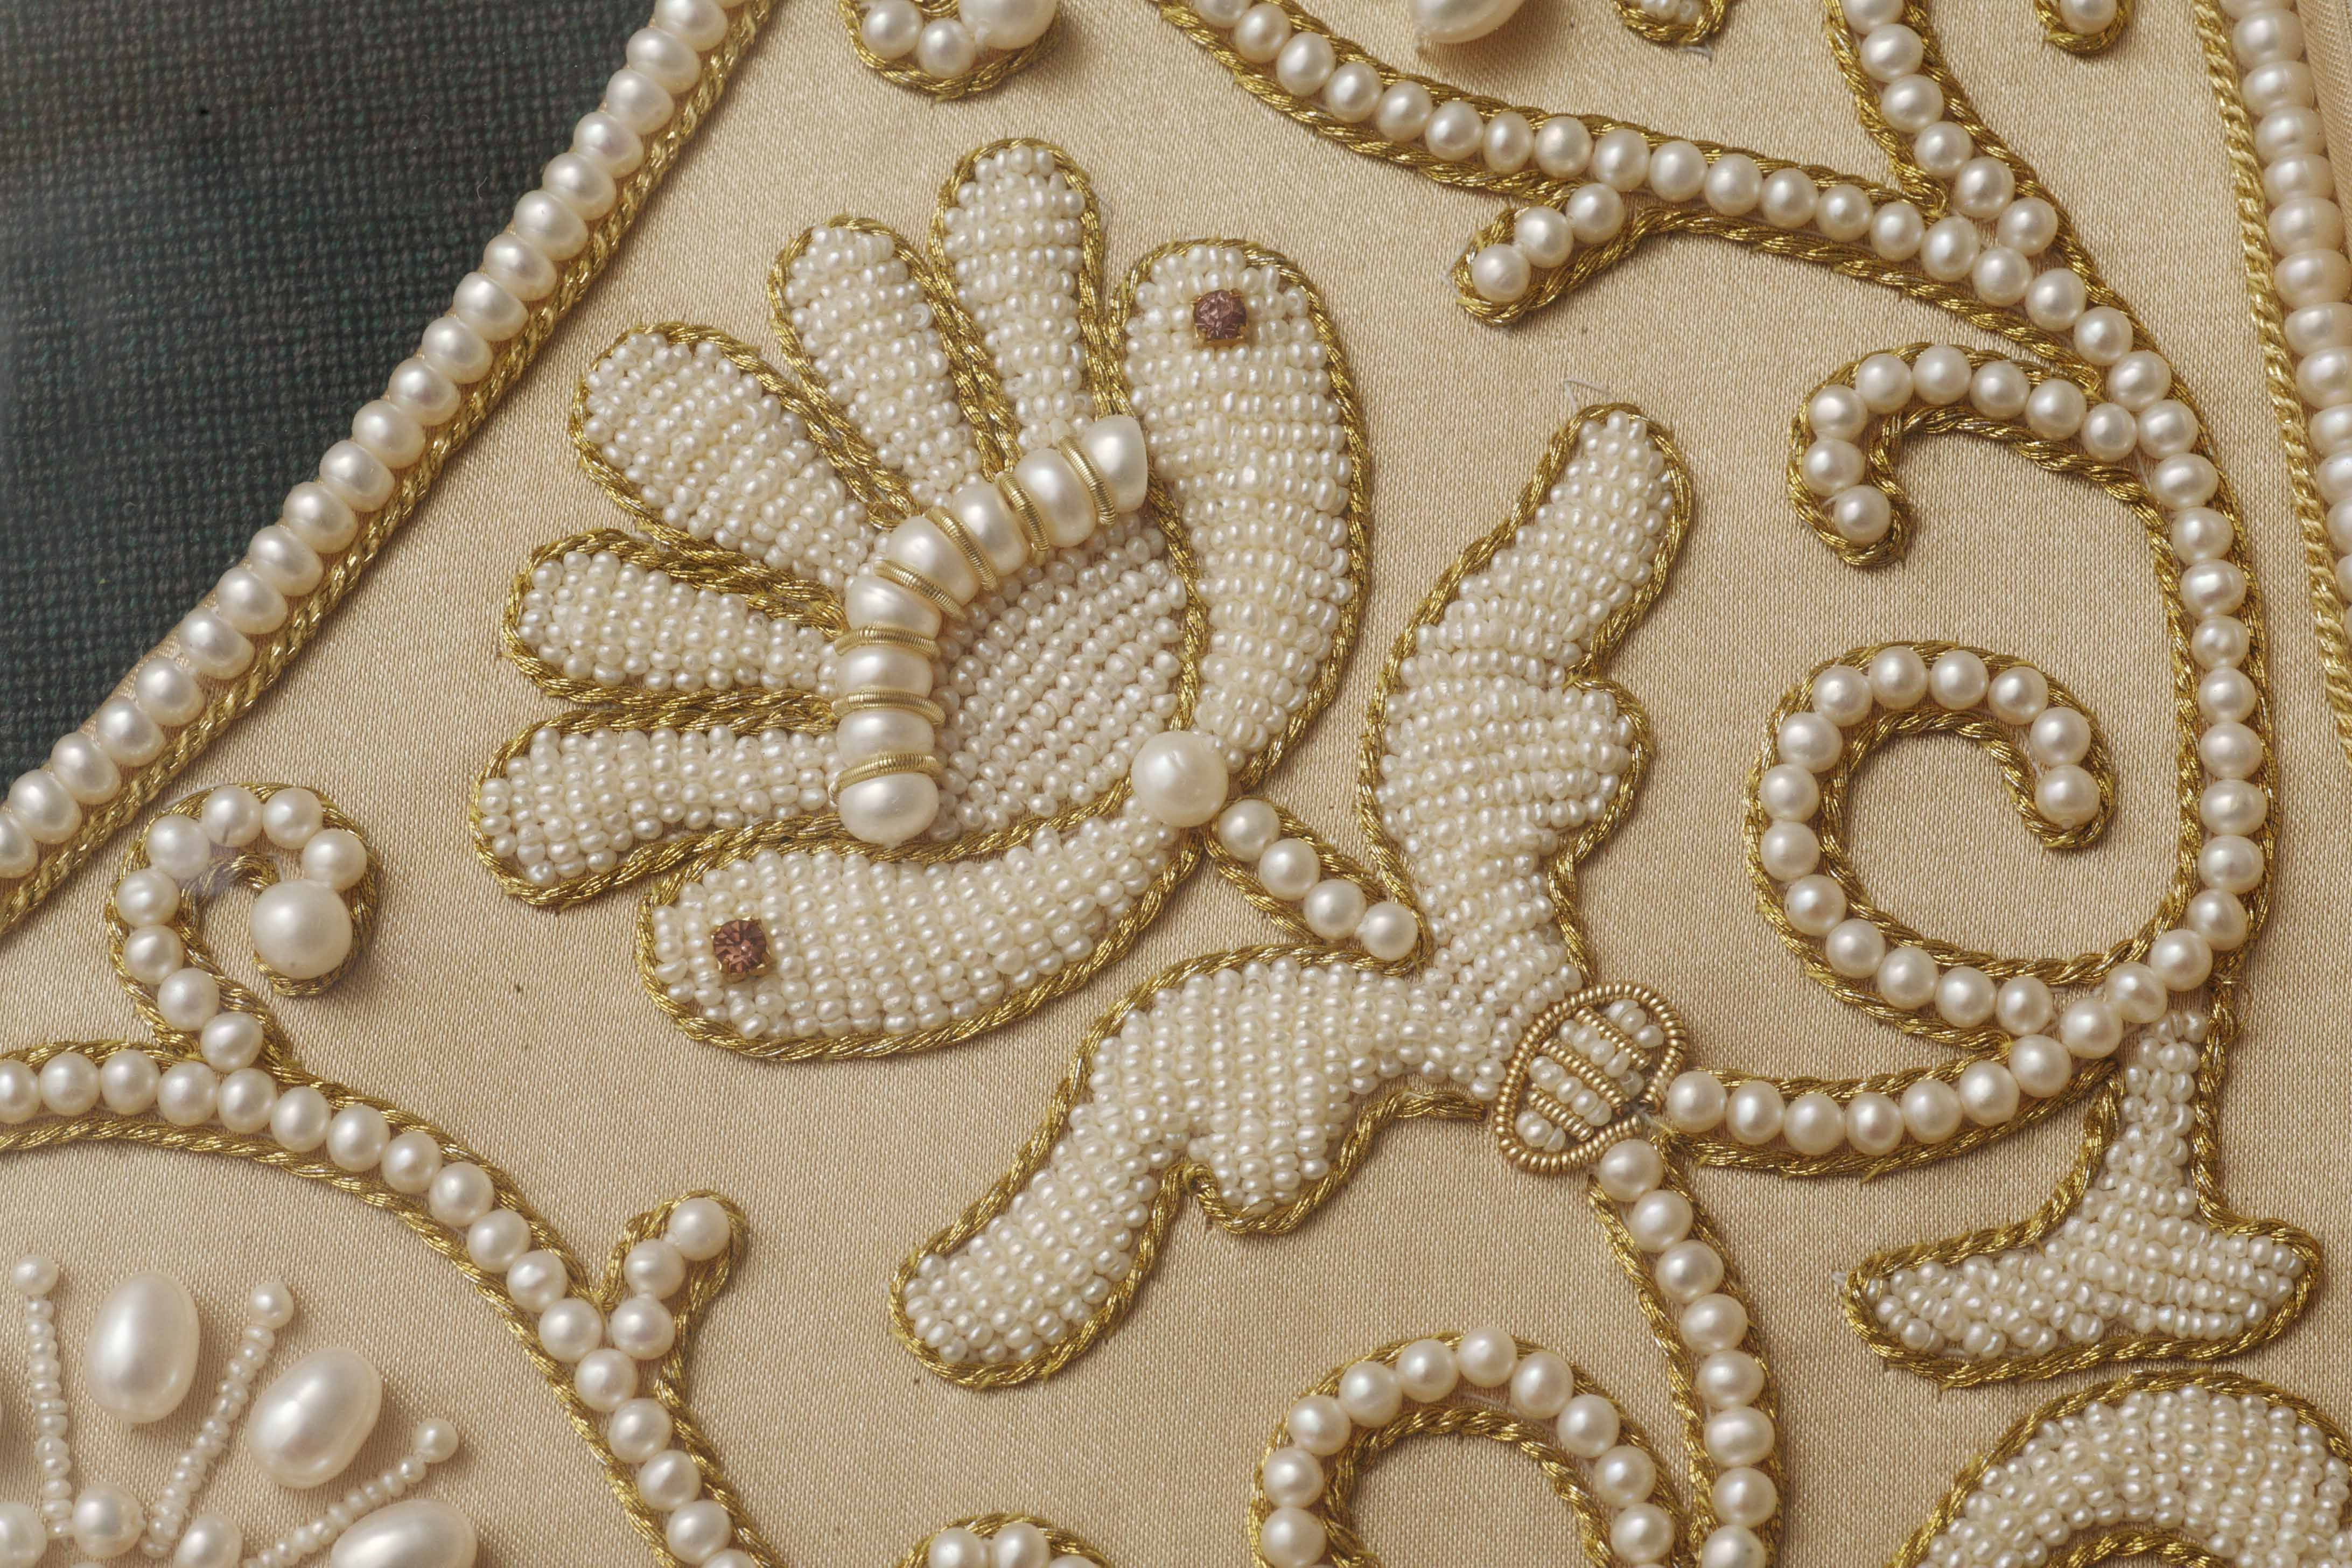 Pearl work embroidery designs makaroka pearl embroidery detail embroidery i made pinterest bankloansurffo Images